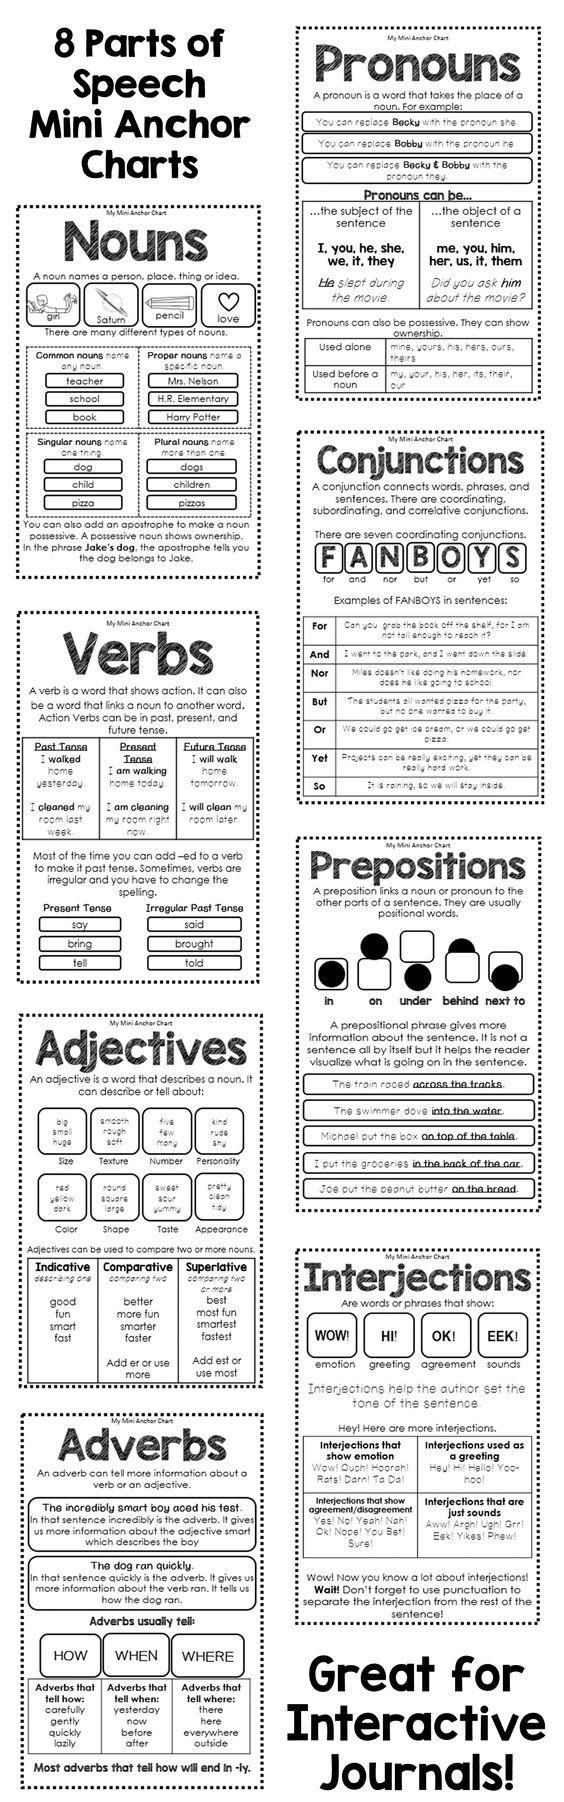 Get 8 mini anchor charts to help teach your students about the 8 ...